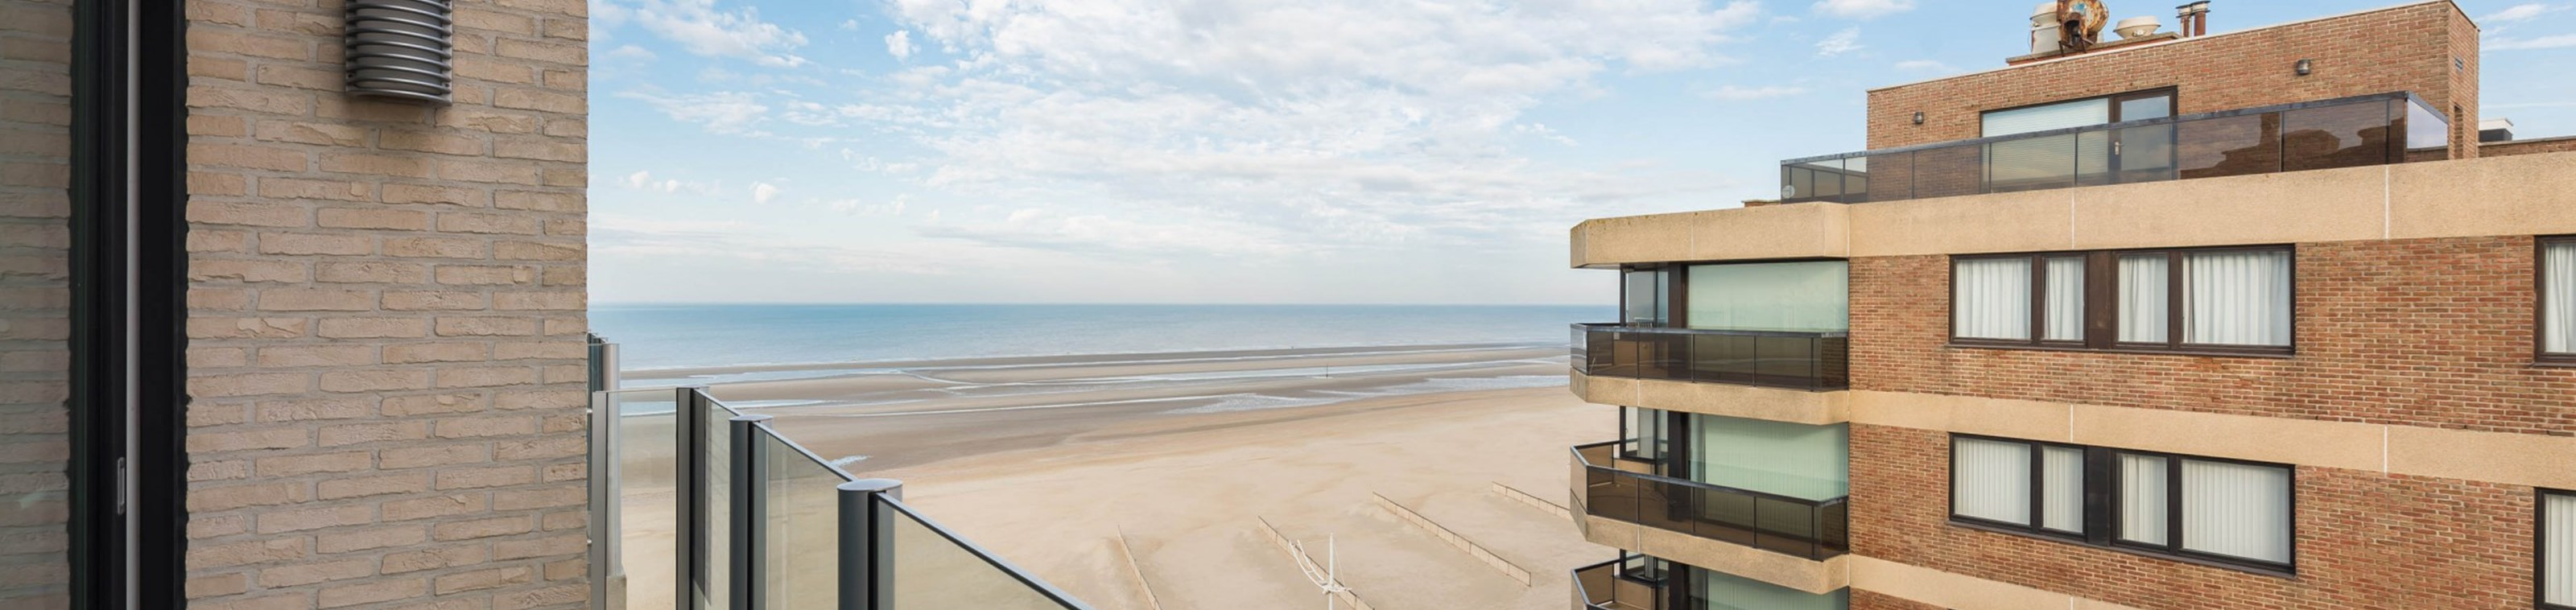 Appartement La Digue in Koksijde